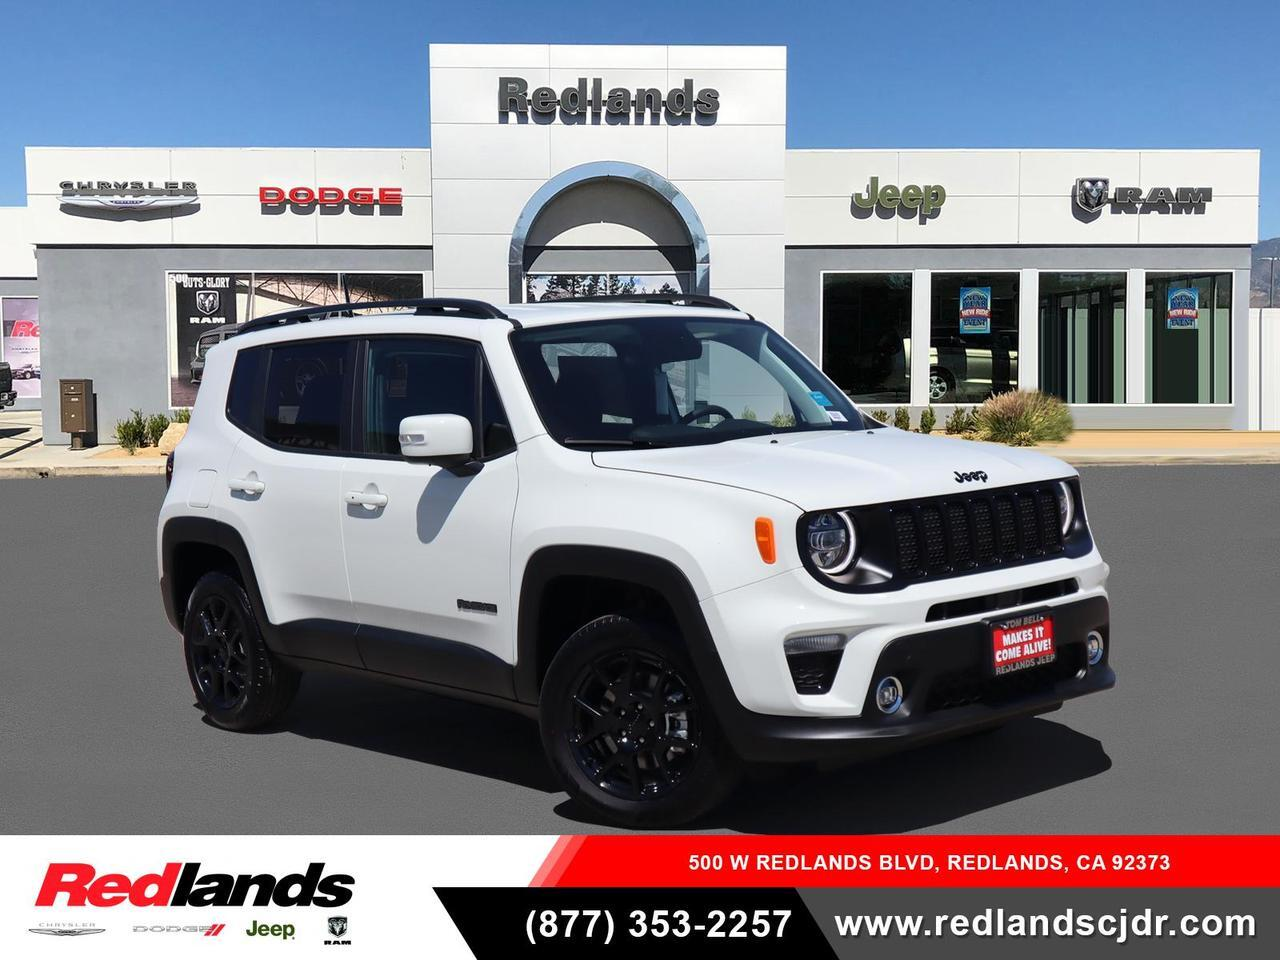 New 2020 Jeep Renegade Altitude 4x4 Alpine White Clear Coat Exterior Paint For Sale In Redlands Ca Zacnjbbb6lpl56154